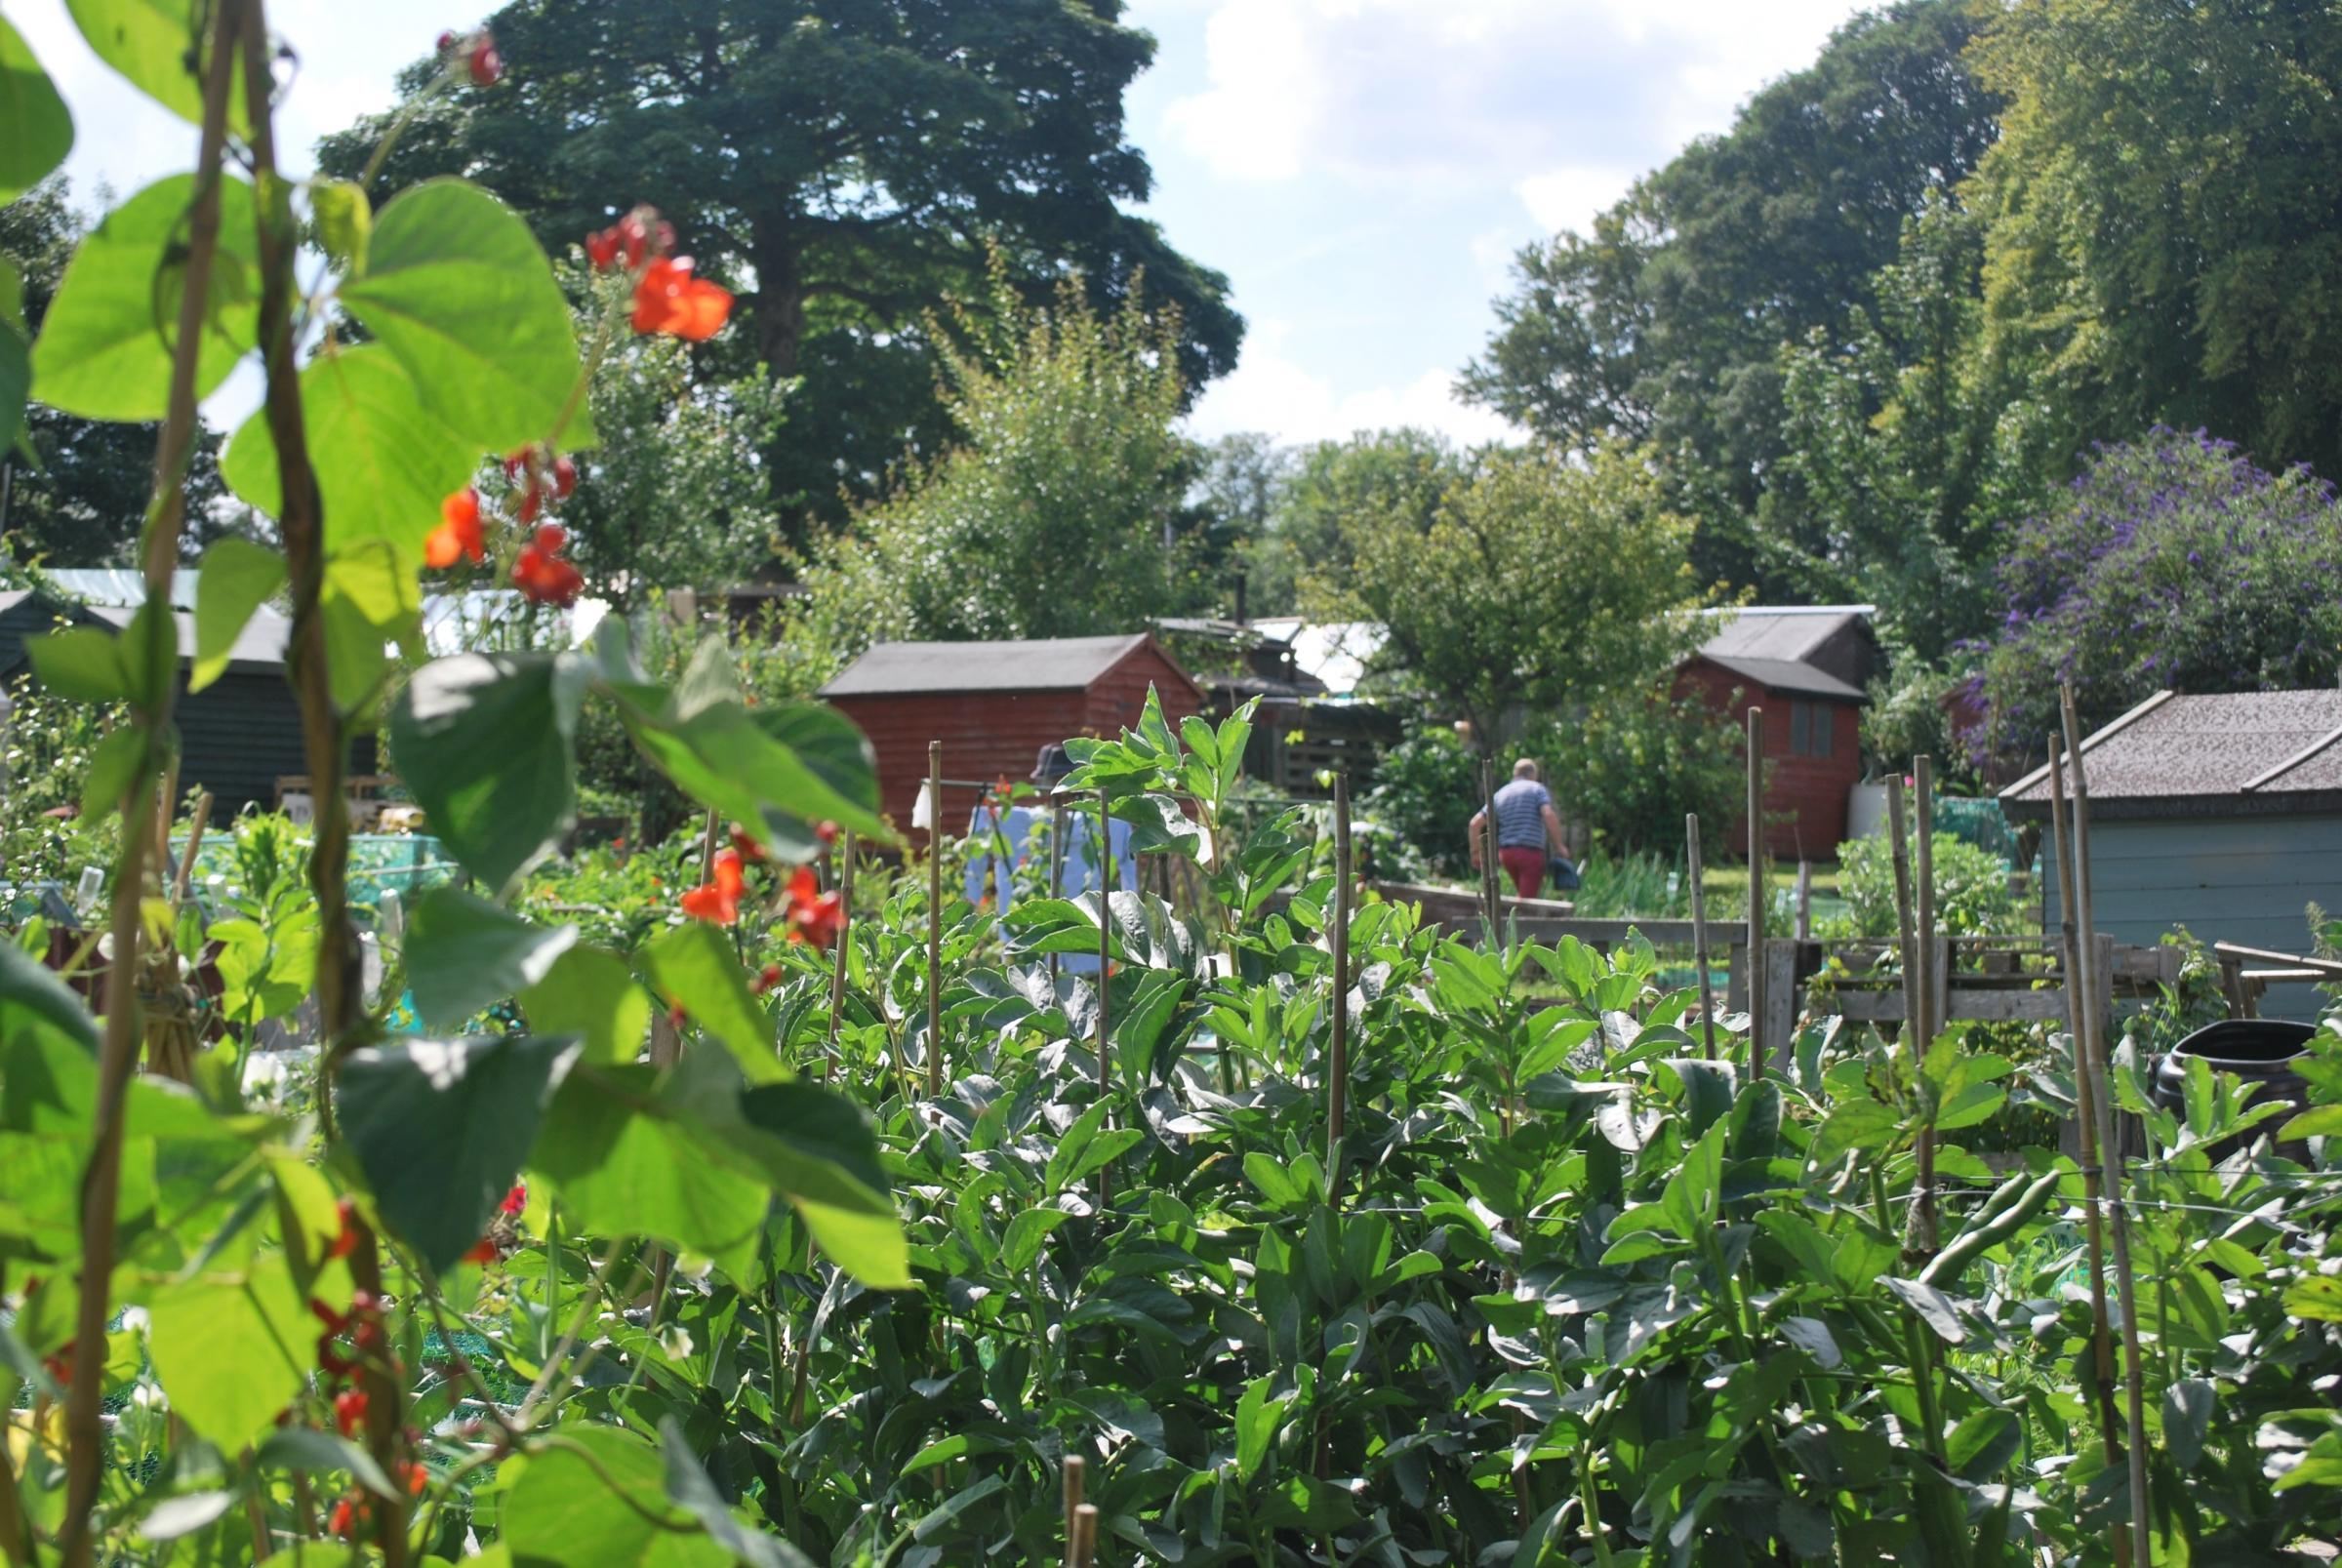 TARGETED: The Harpers Lane allotment site